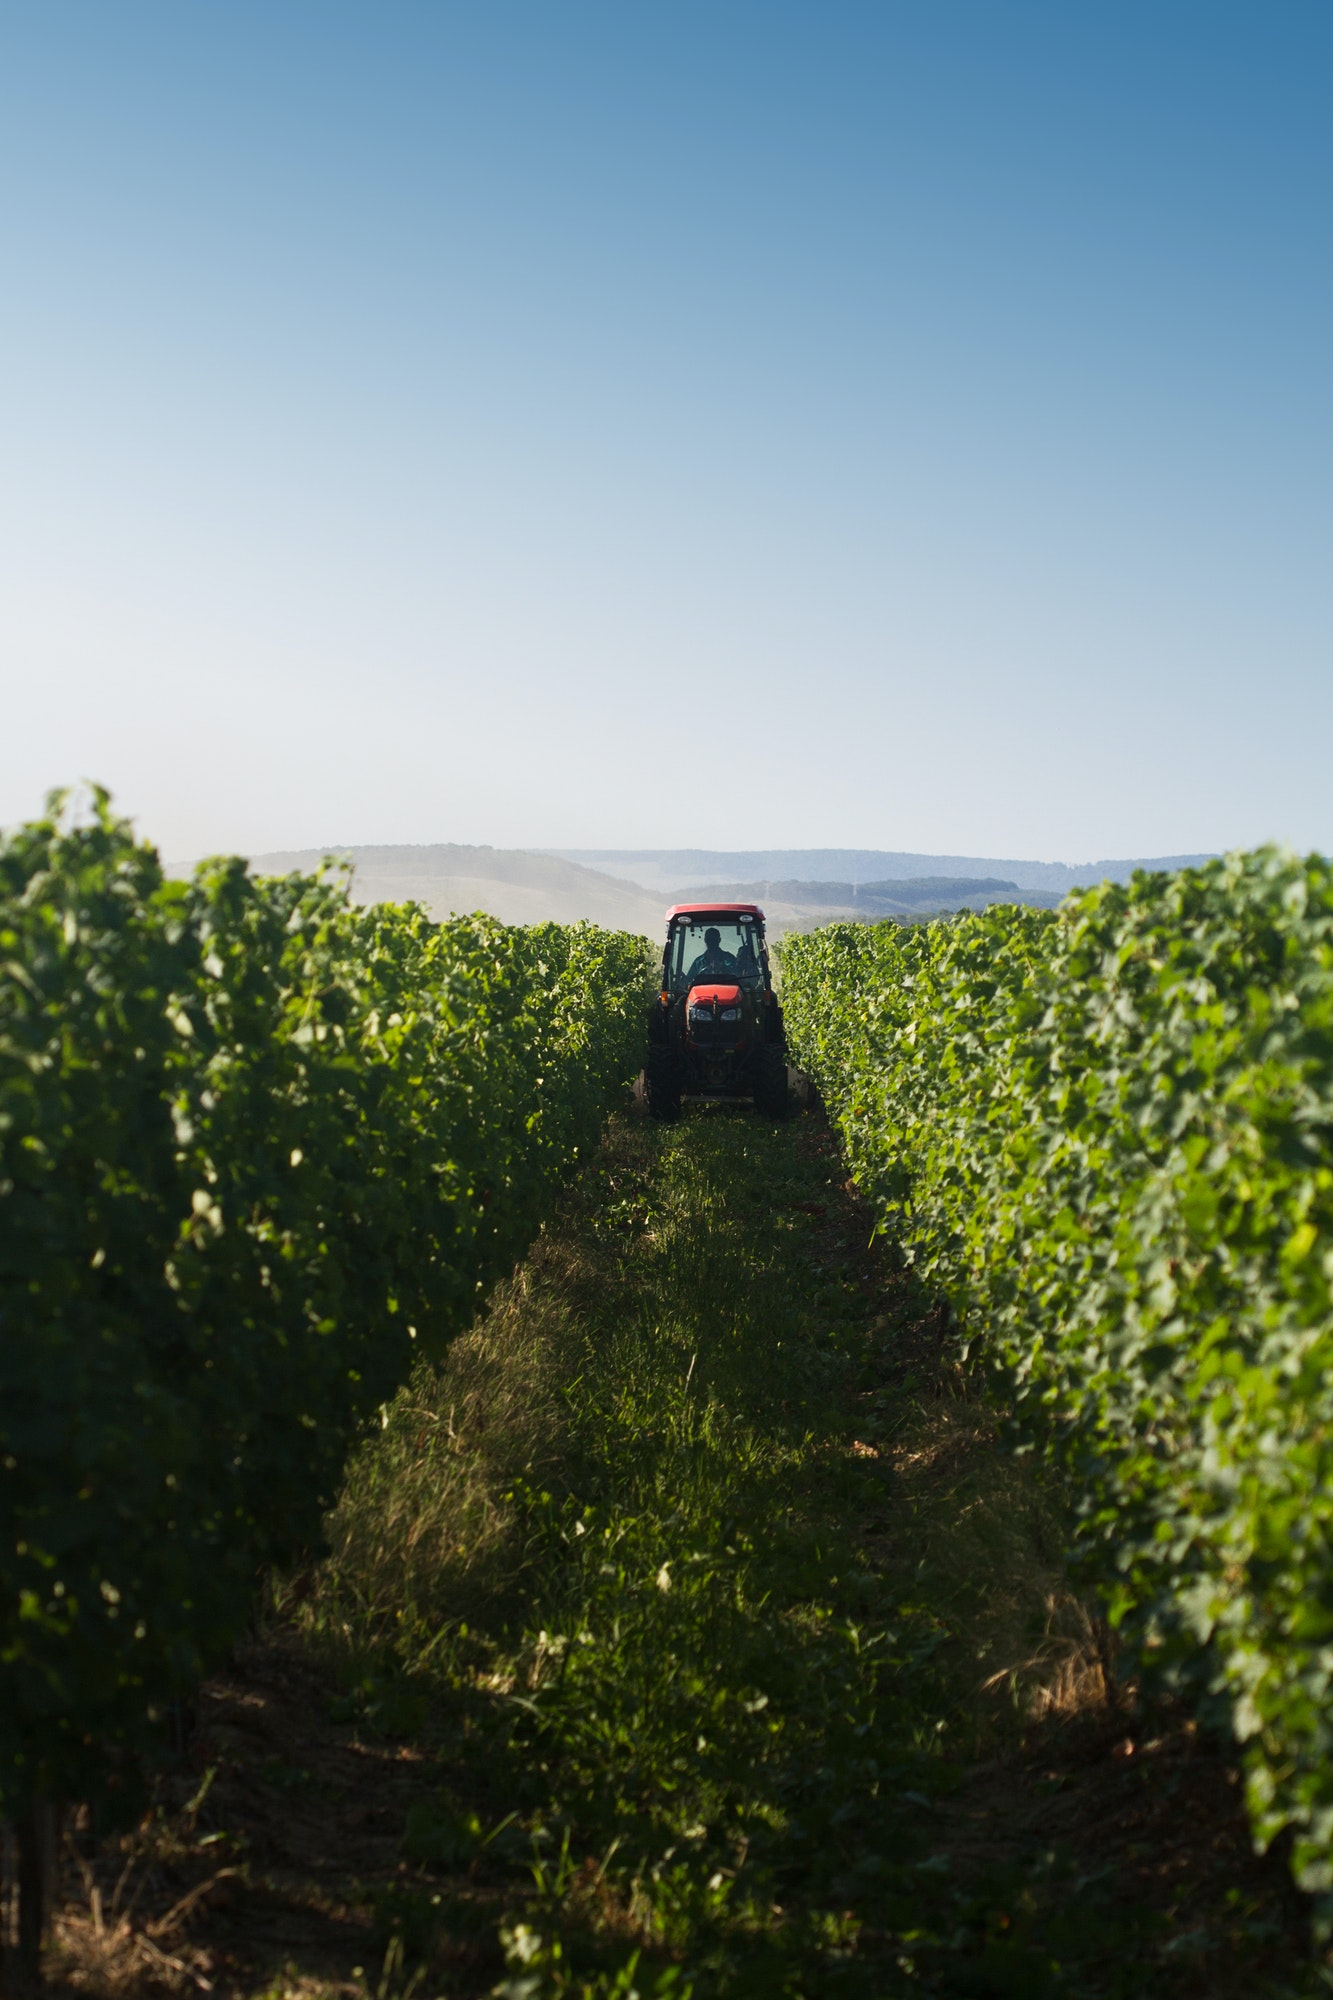 red tractor working in the vineyard